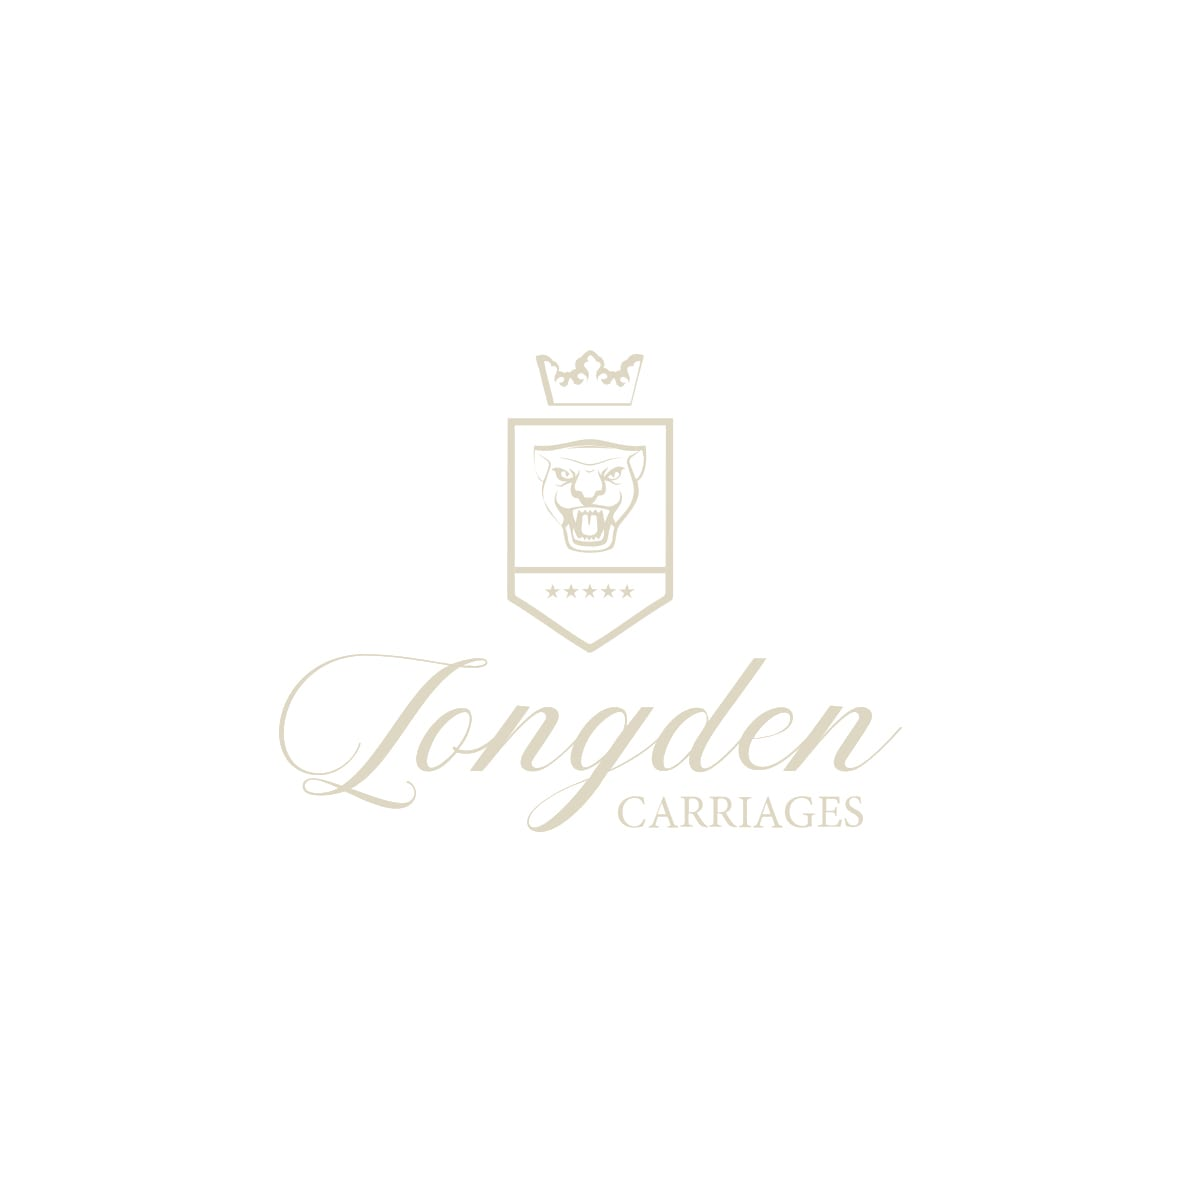 Longden Carriages Logo